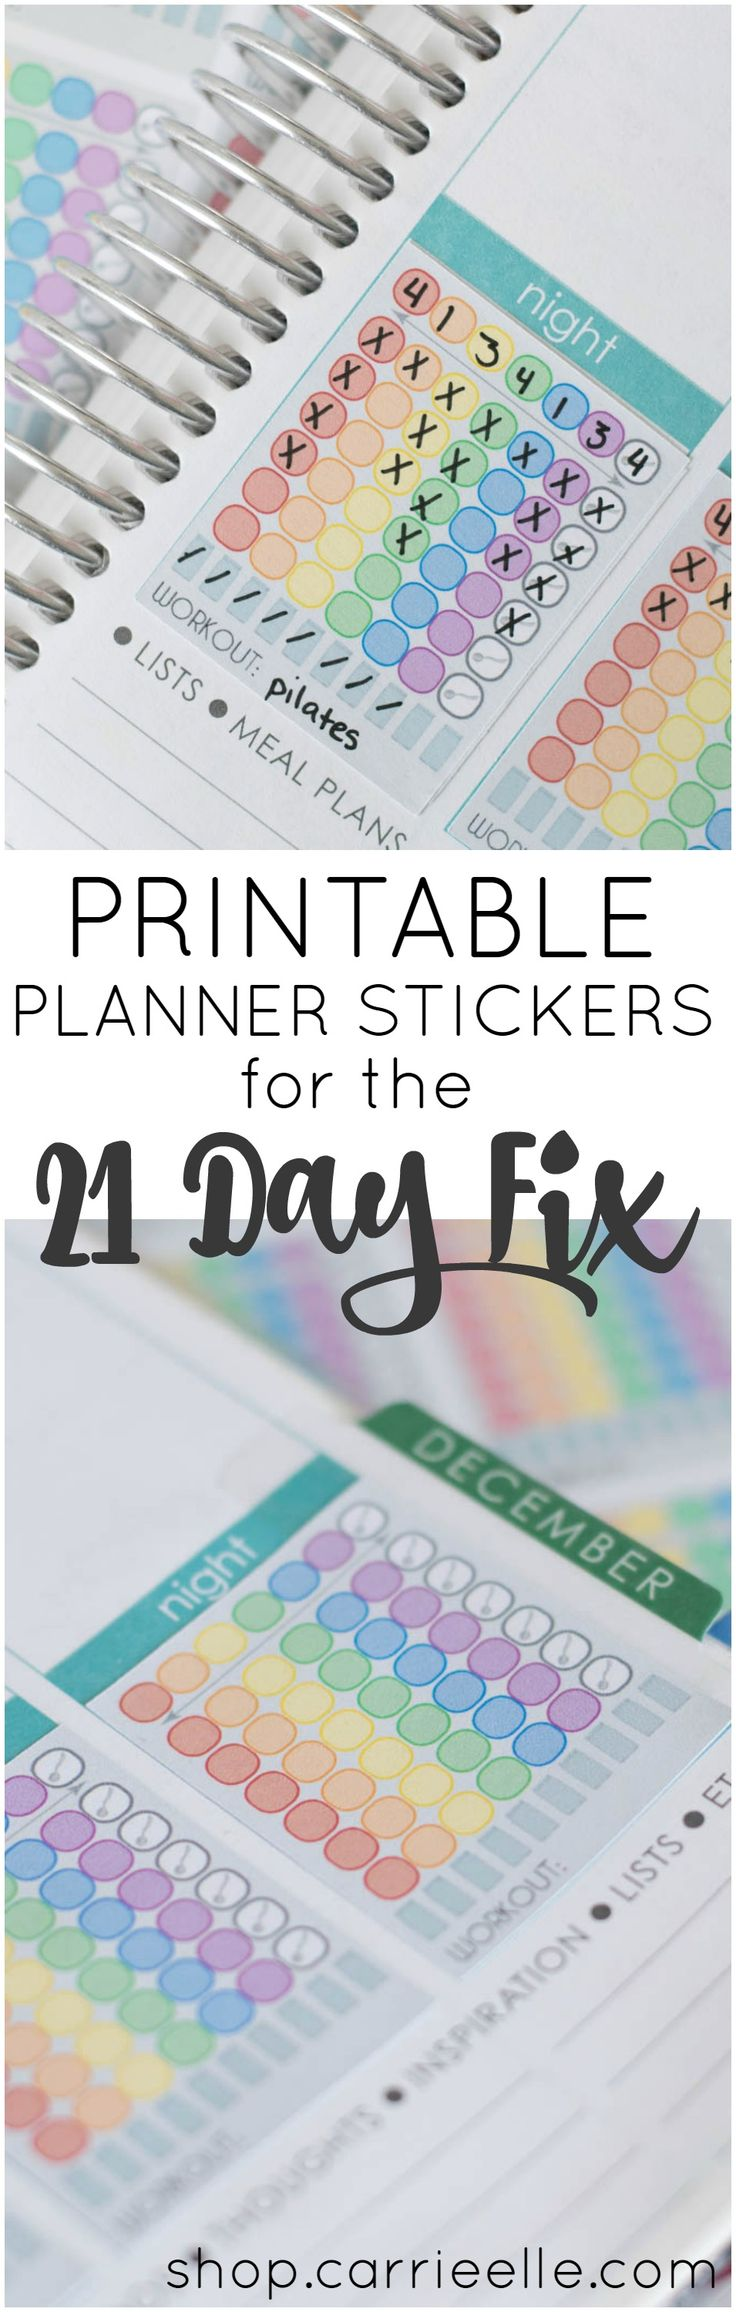 Printable 21 Day Fix Planner Stickers to track your daily containers, water, and exercise! All you need is some sticker paper and these cute stickers to make your own - they're perfect for your Erin Condren Life Planner but you can stick them anywhere.